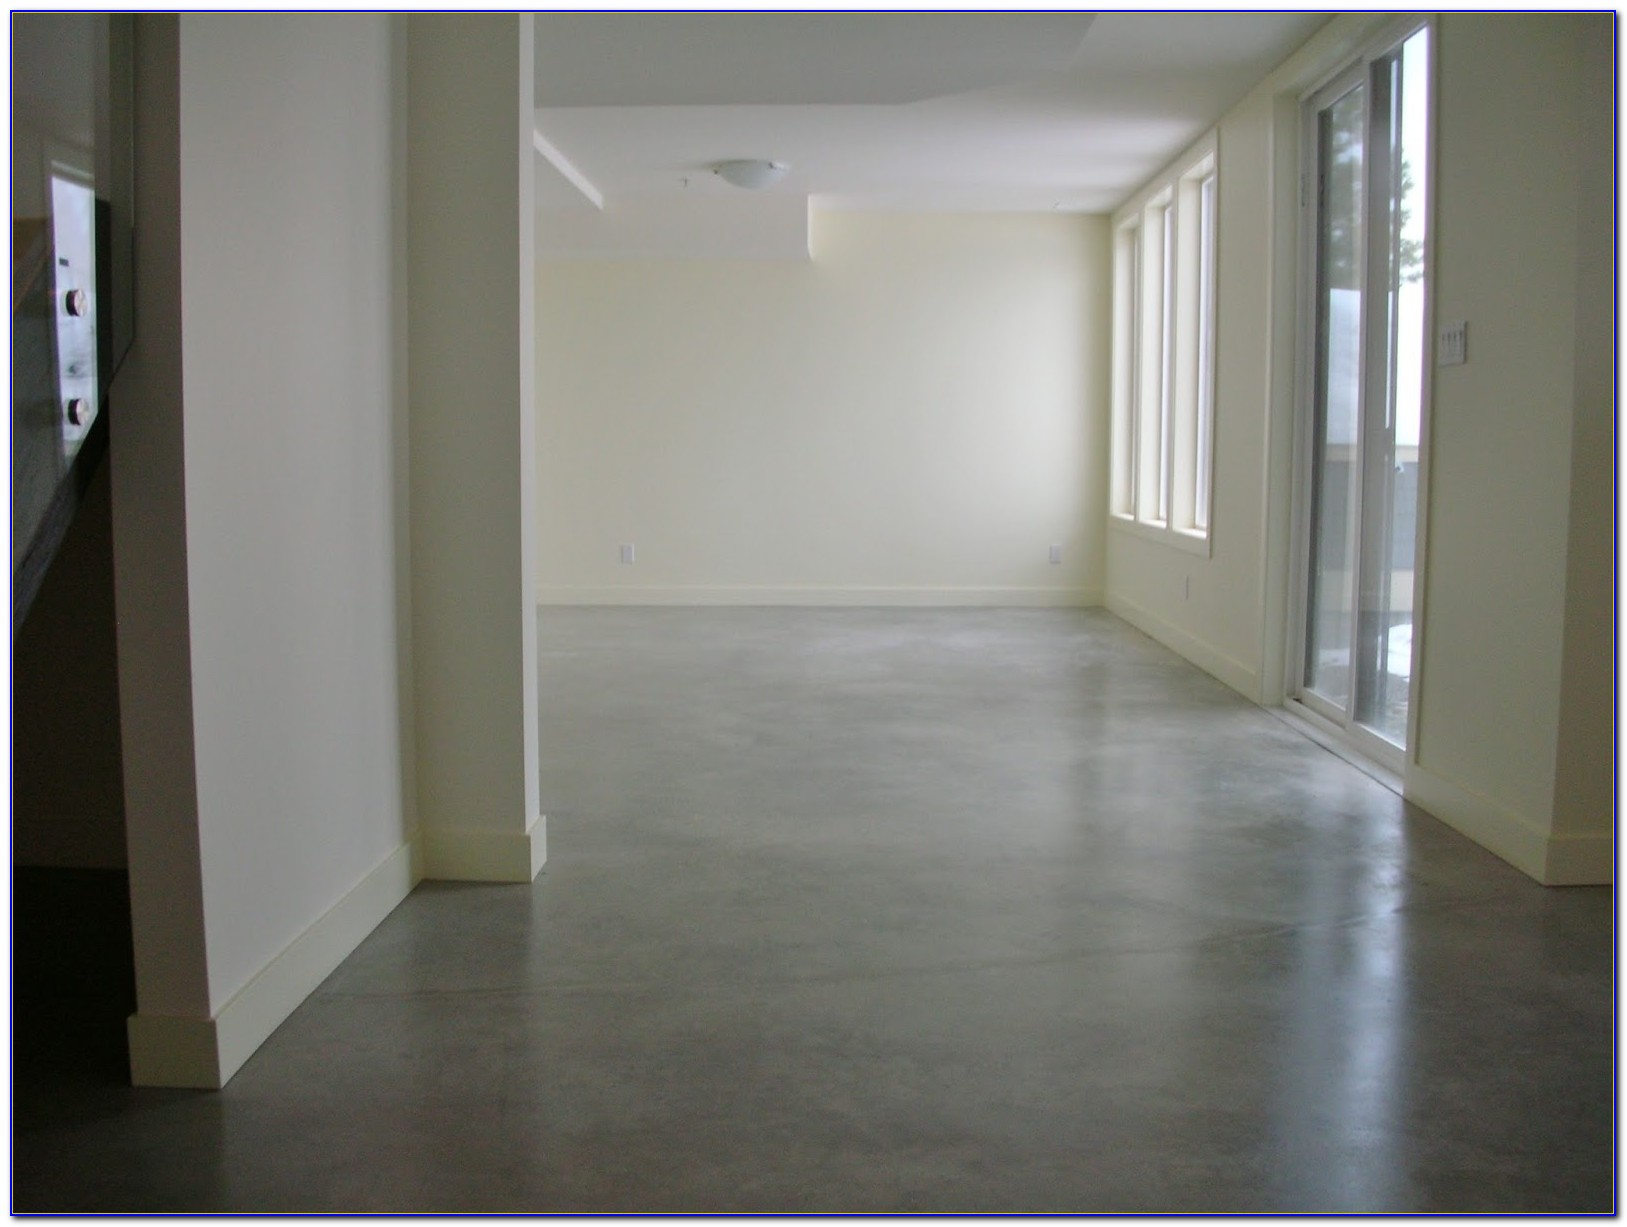 Waxing a stained concrete floor flooring home design for Best wax for stained concrete floors